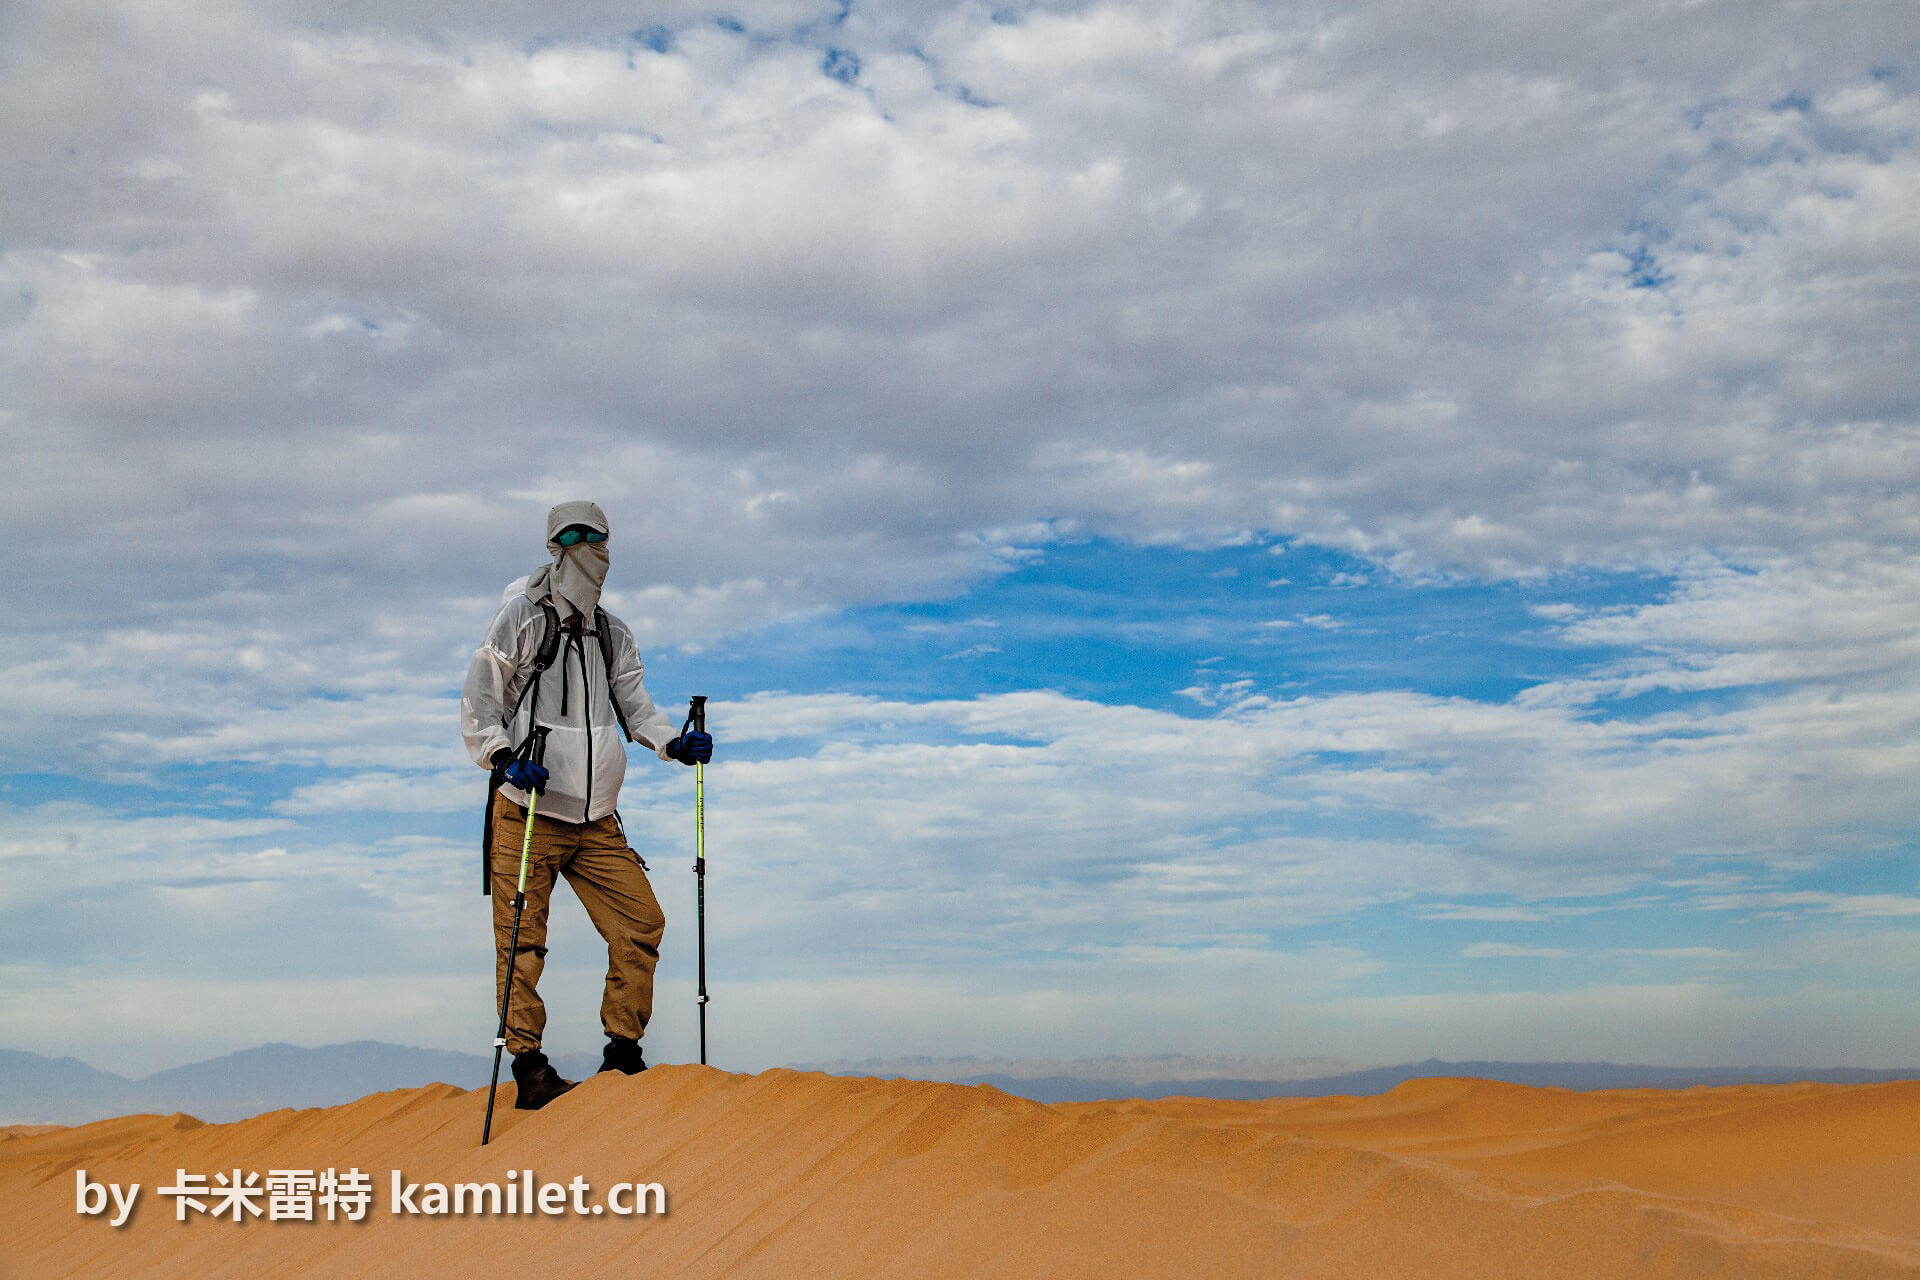 tengri-desert-photo-kamilet-cn-34 -  -